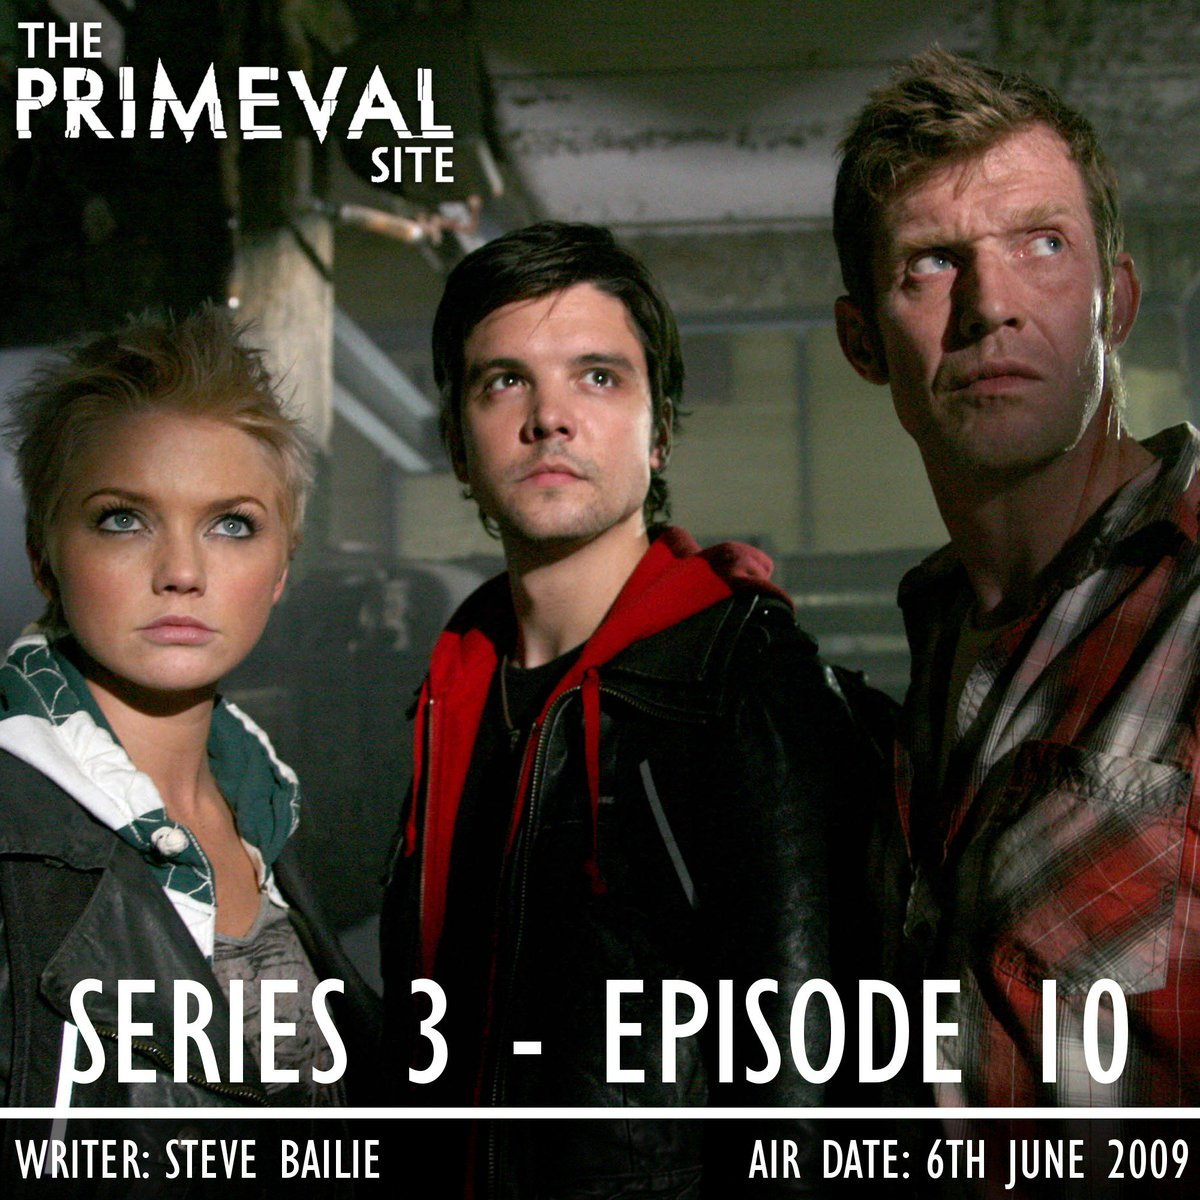 The Primeval Site on Twitter: